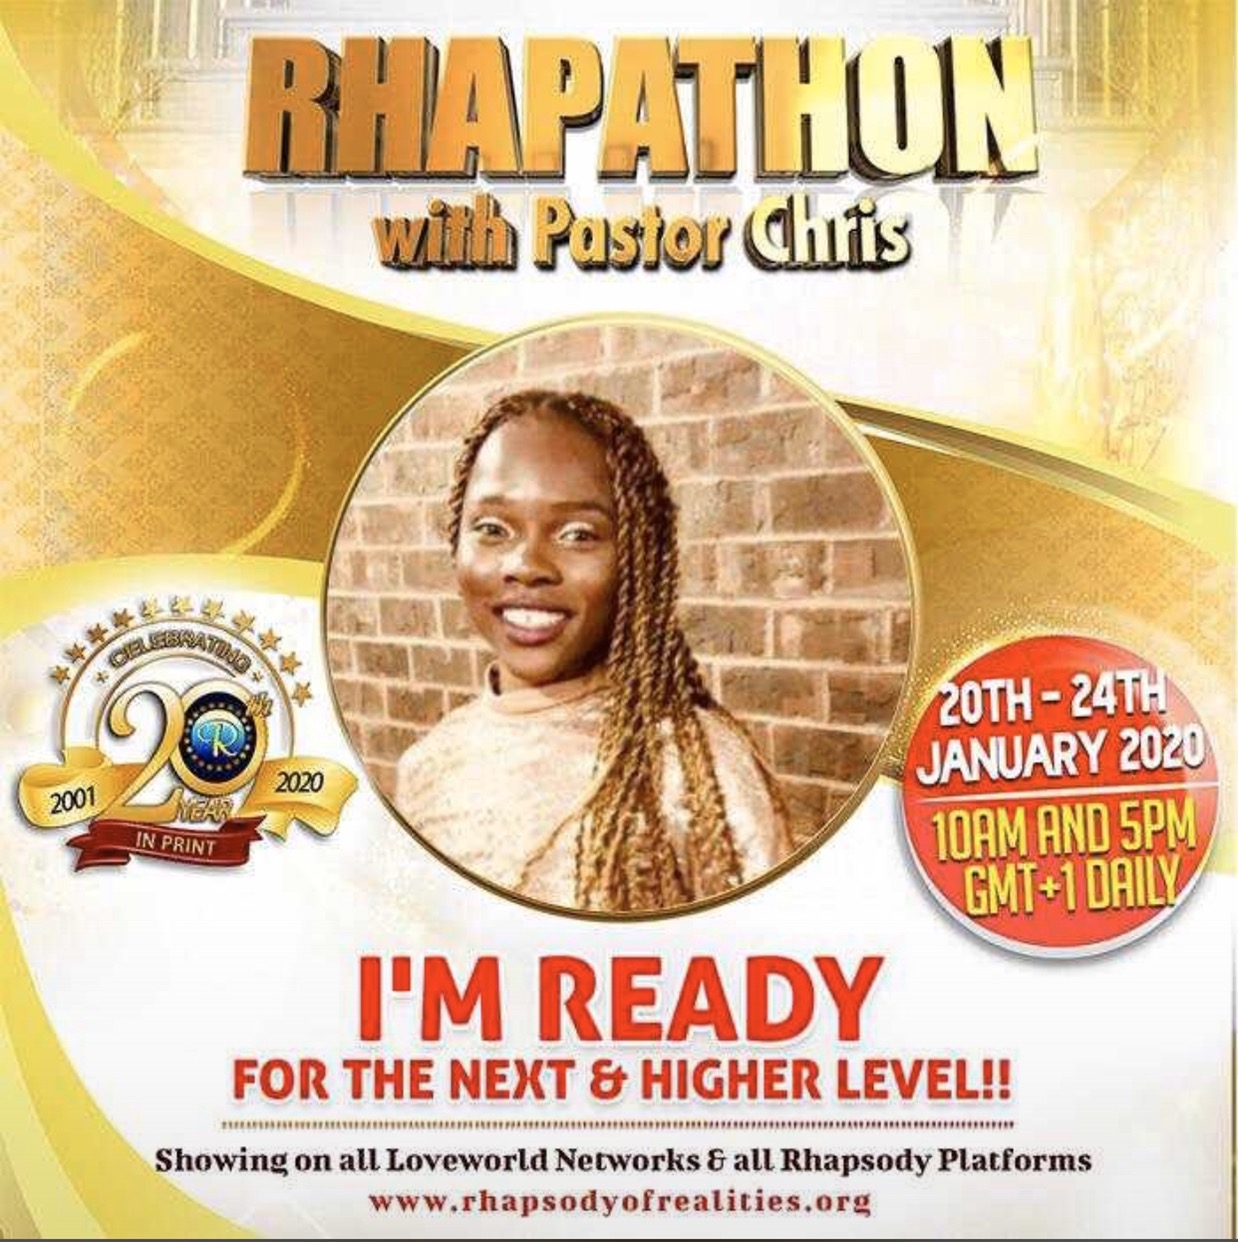 🎉🇺🇸WE'RE READY! THE GLOBAL RHAPATHON